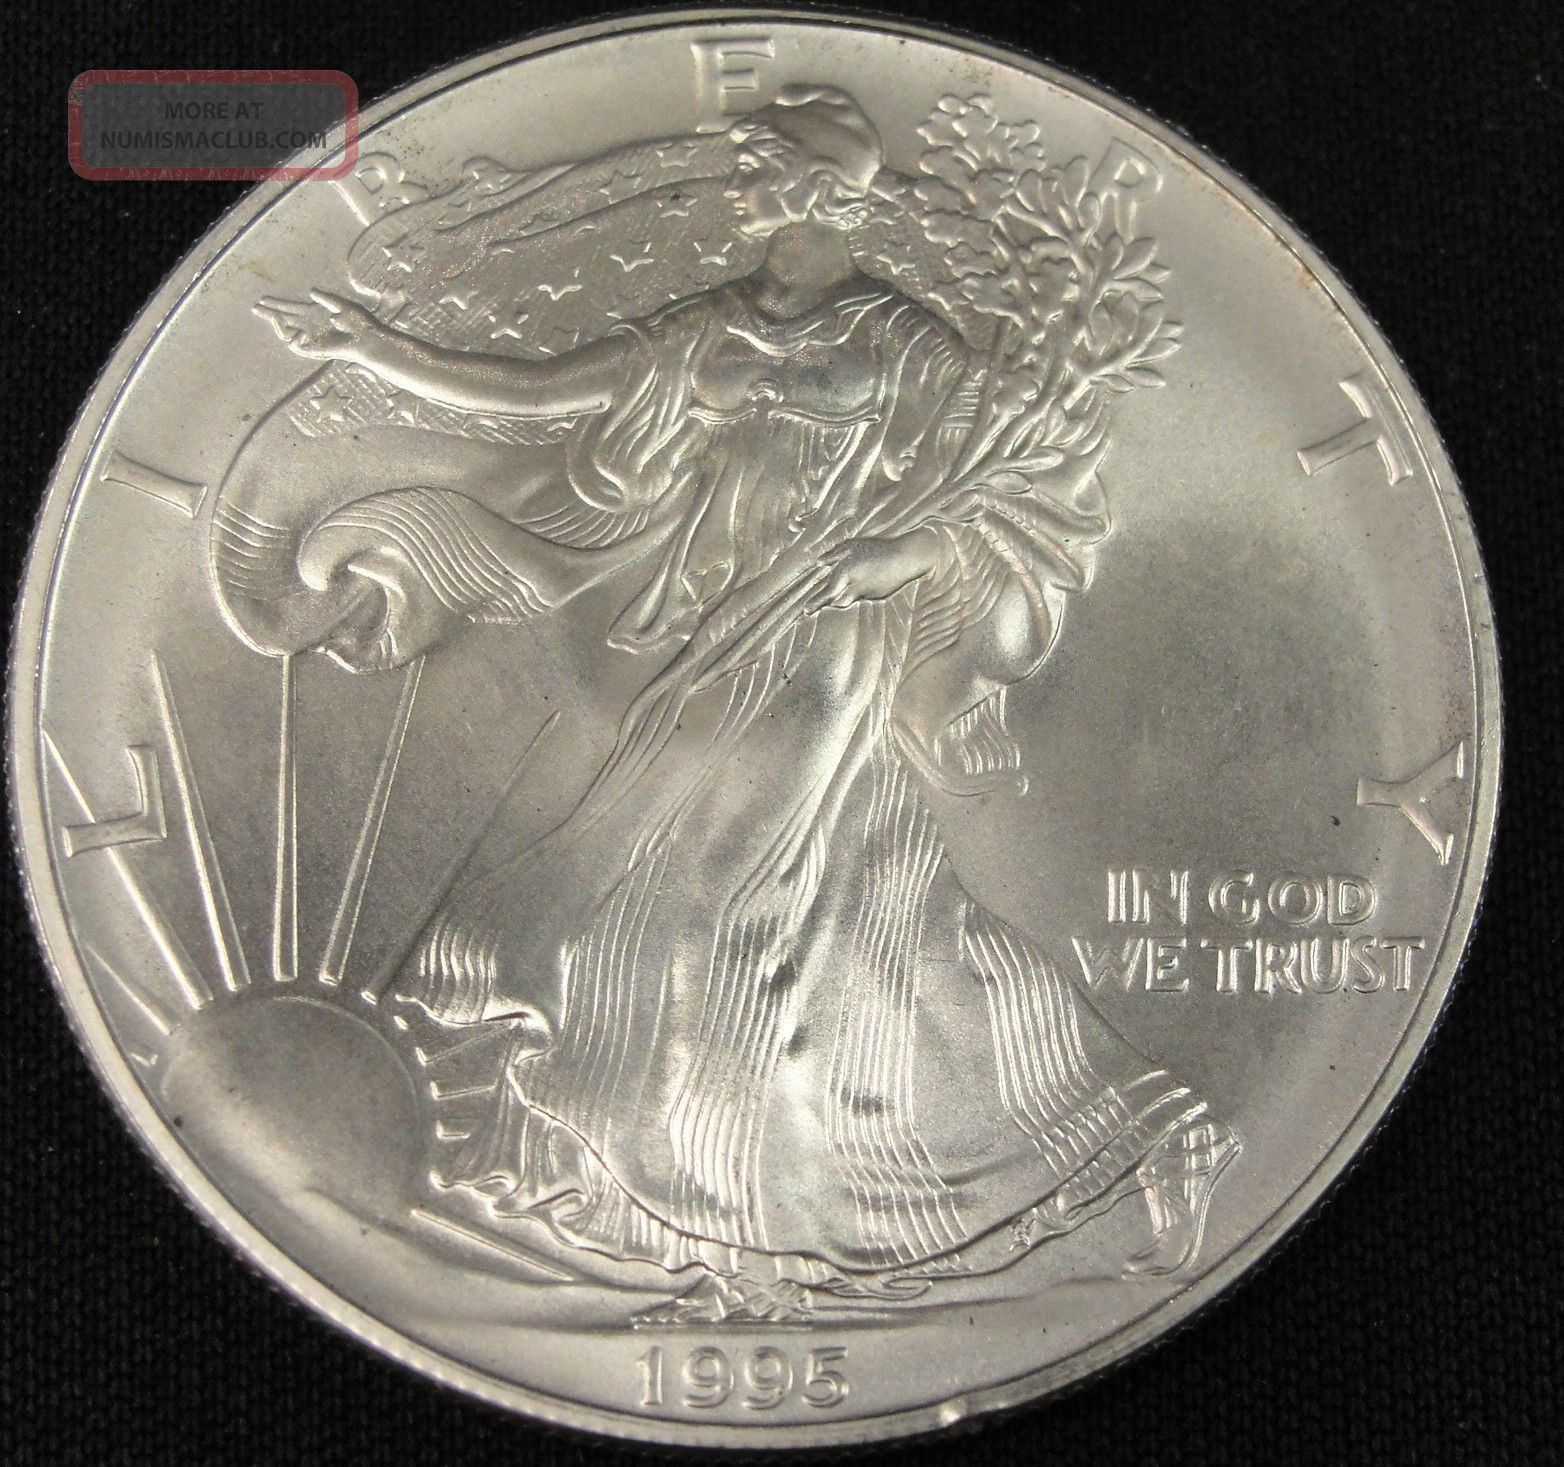 1995 American Silver Eagle Bullion Coin Key Date Uncirculated Nr Silver photo